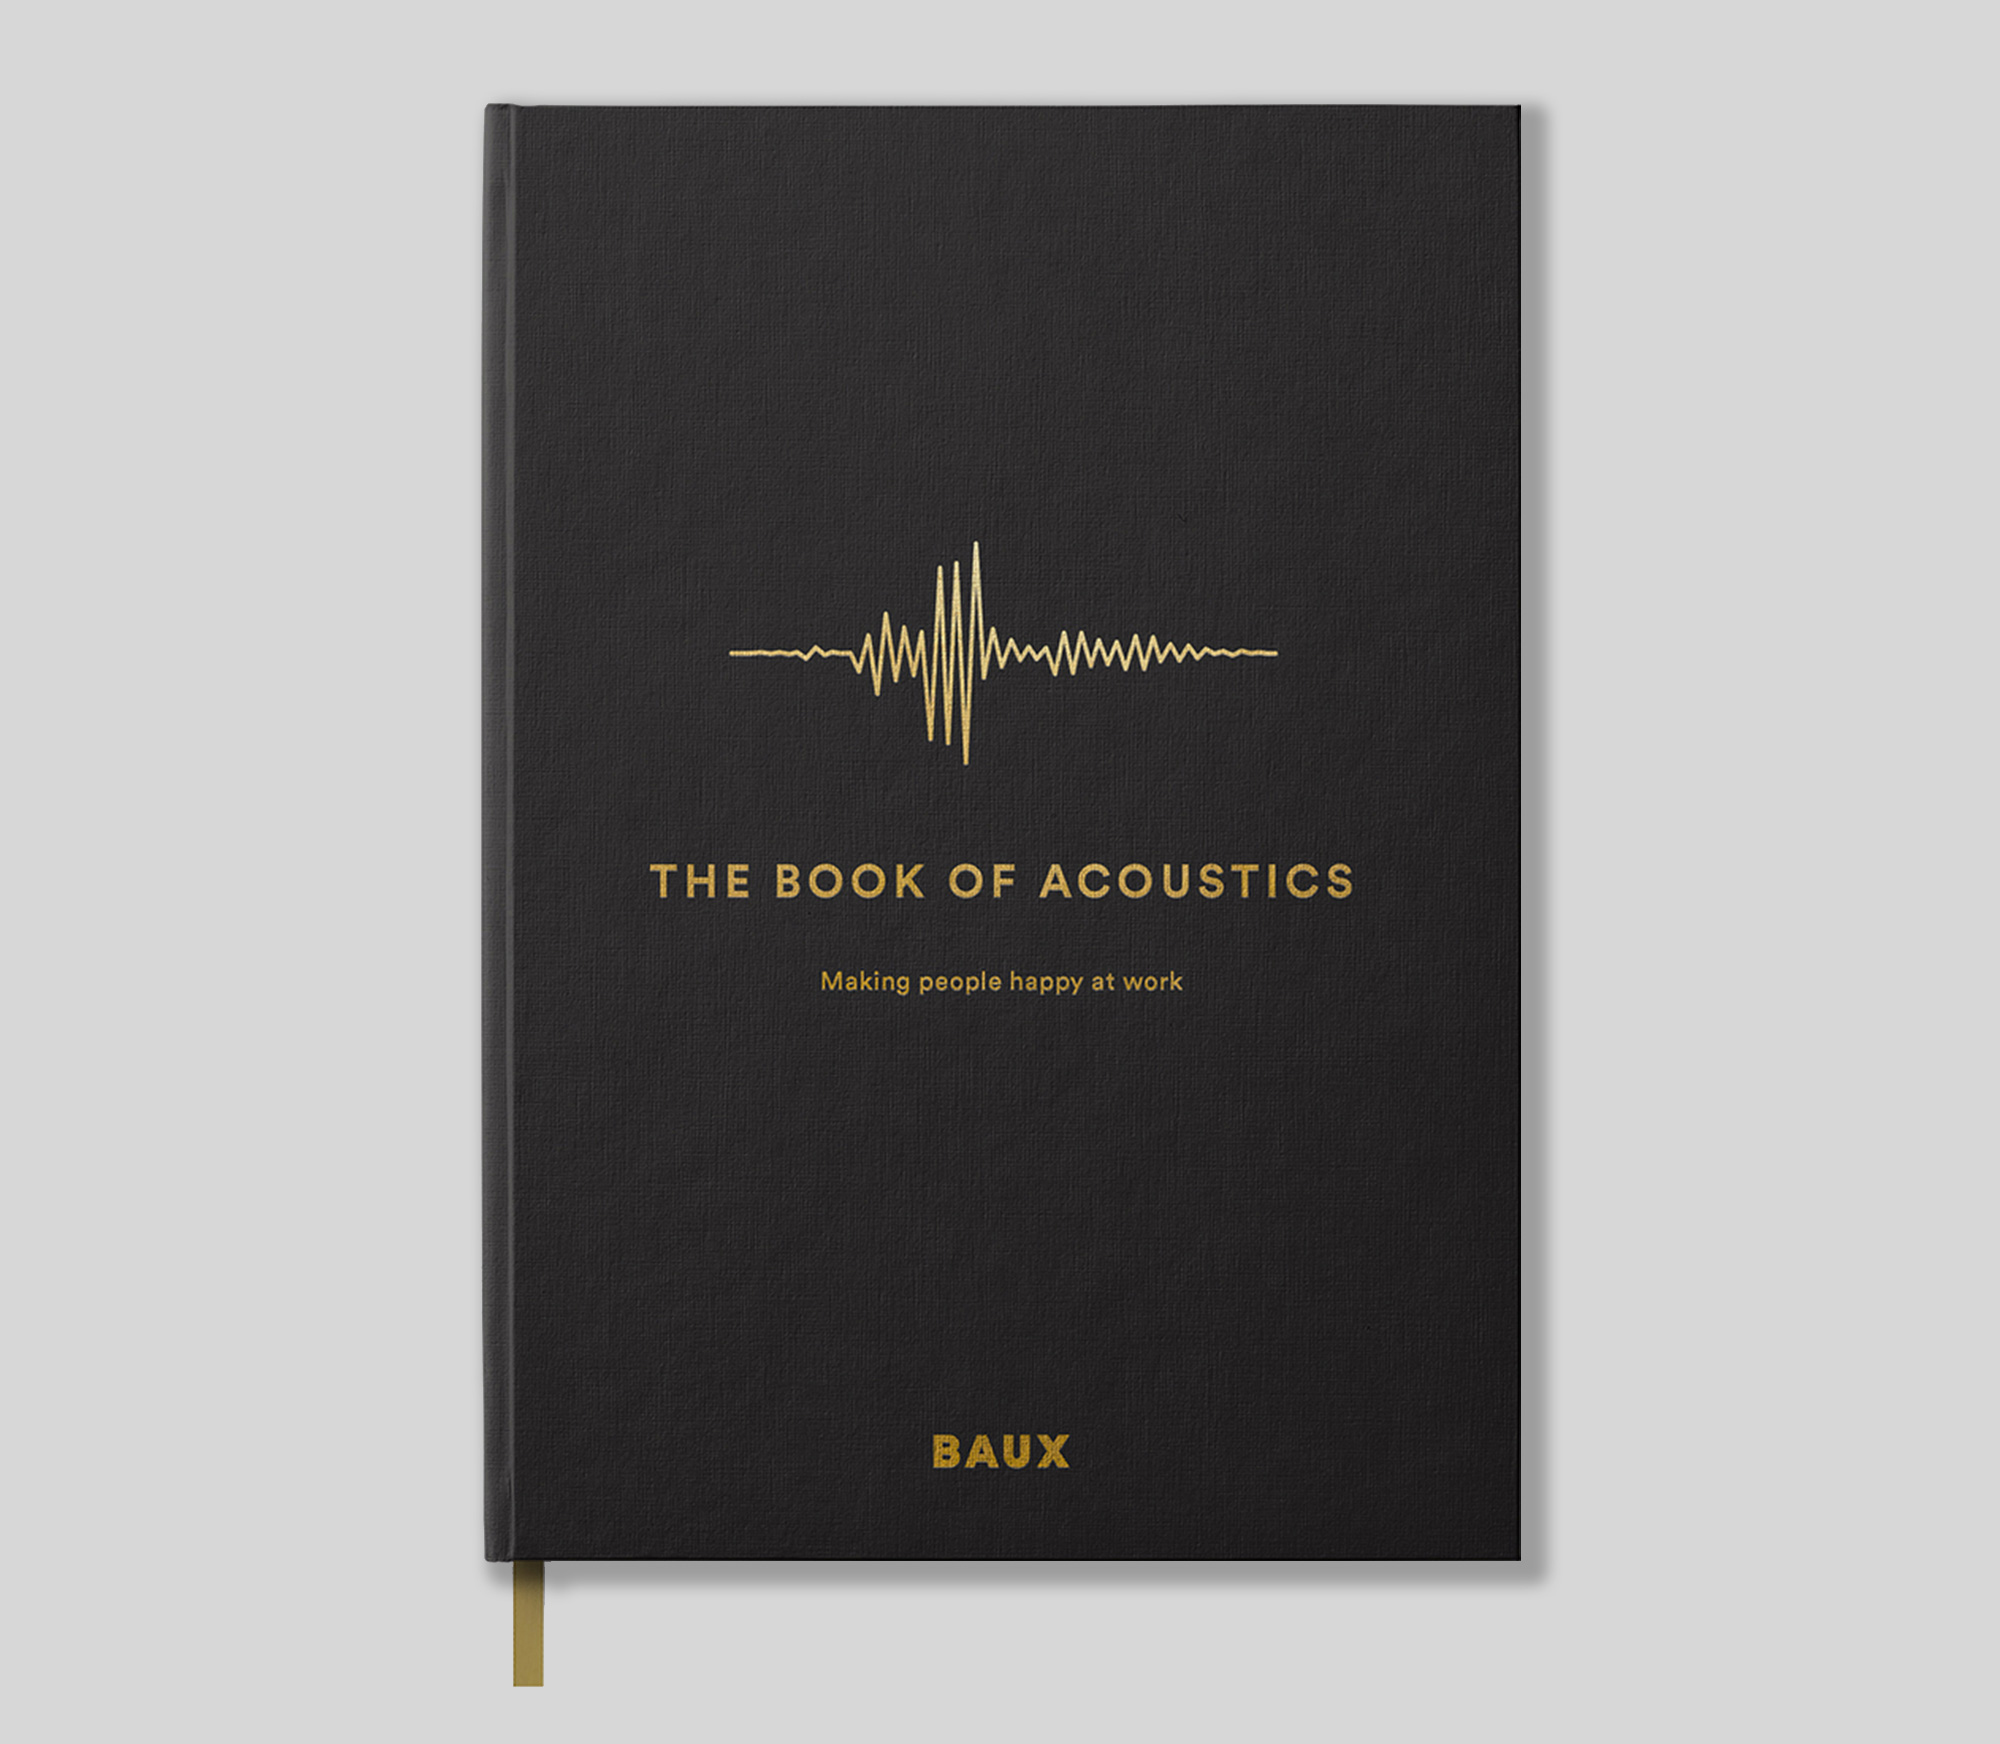 The Book of Acoustics